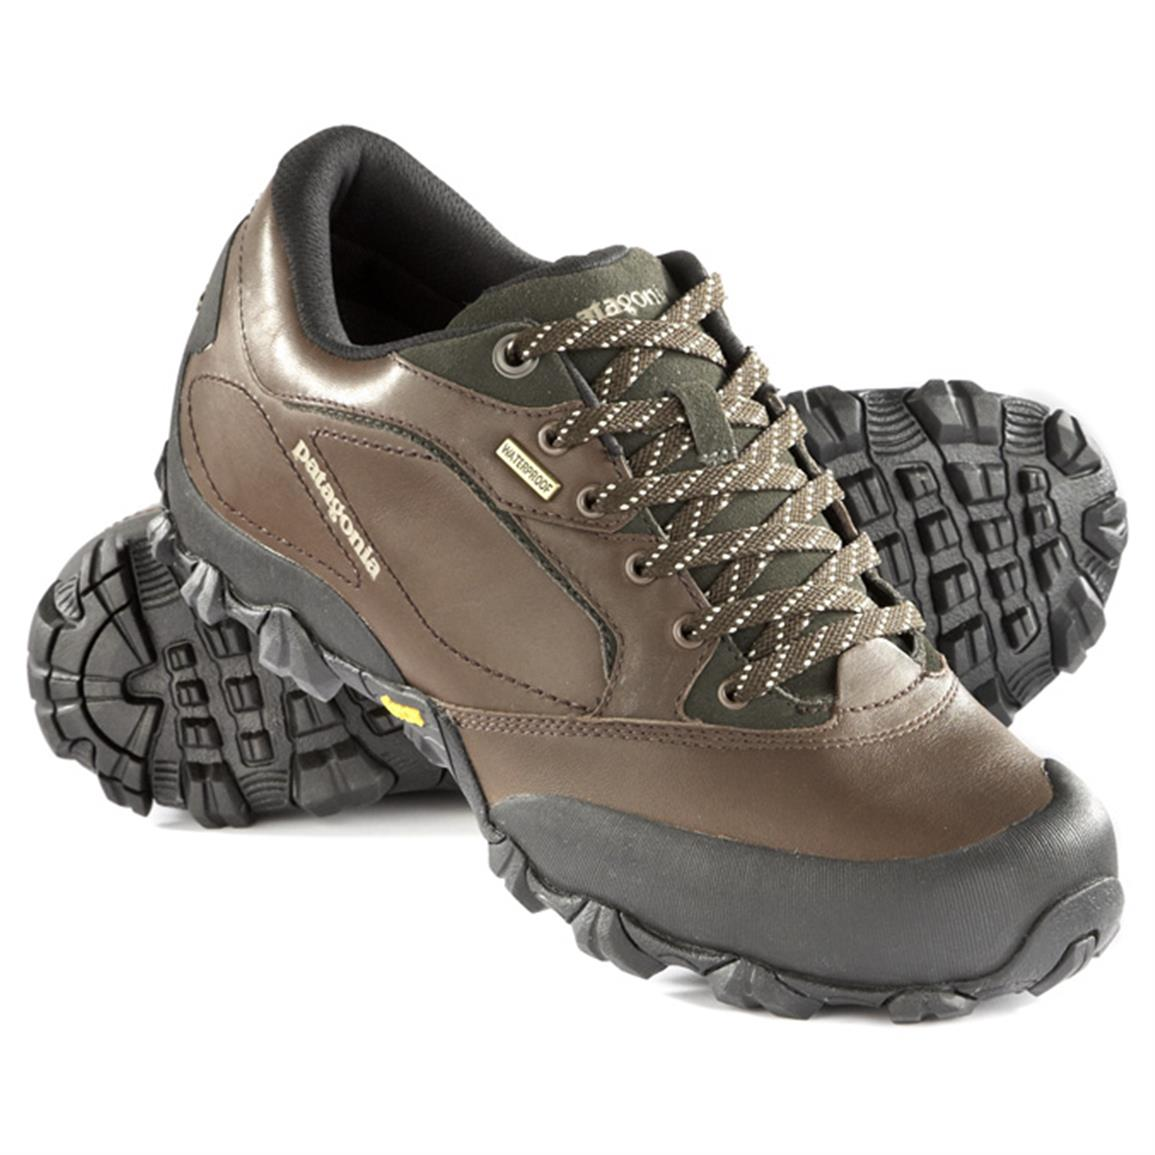 Patagonia Drifter 2.0 Waterproof Hiking Shoes